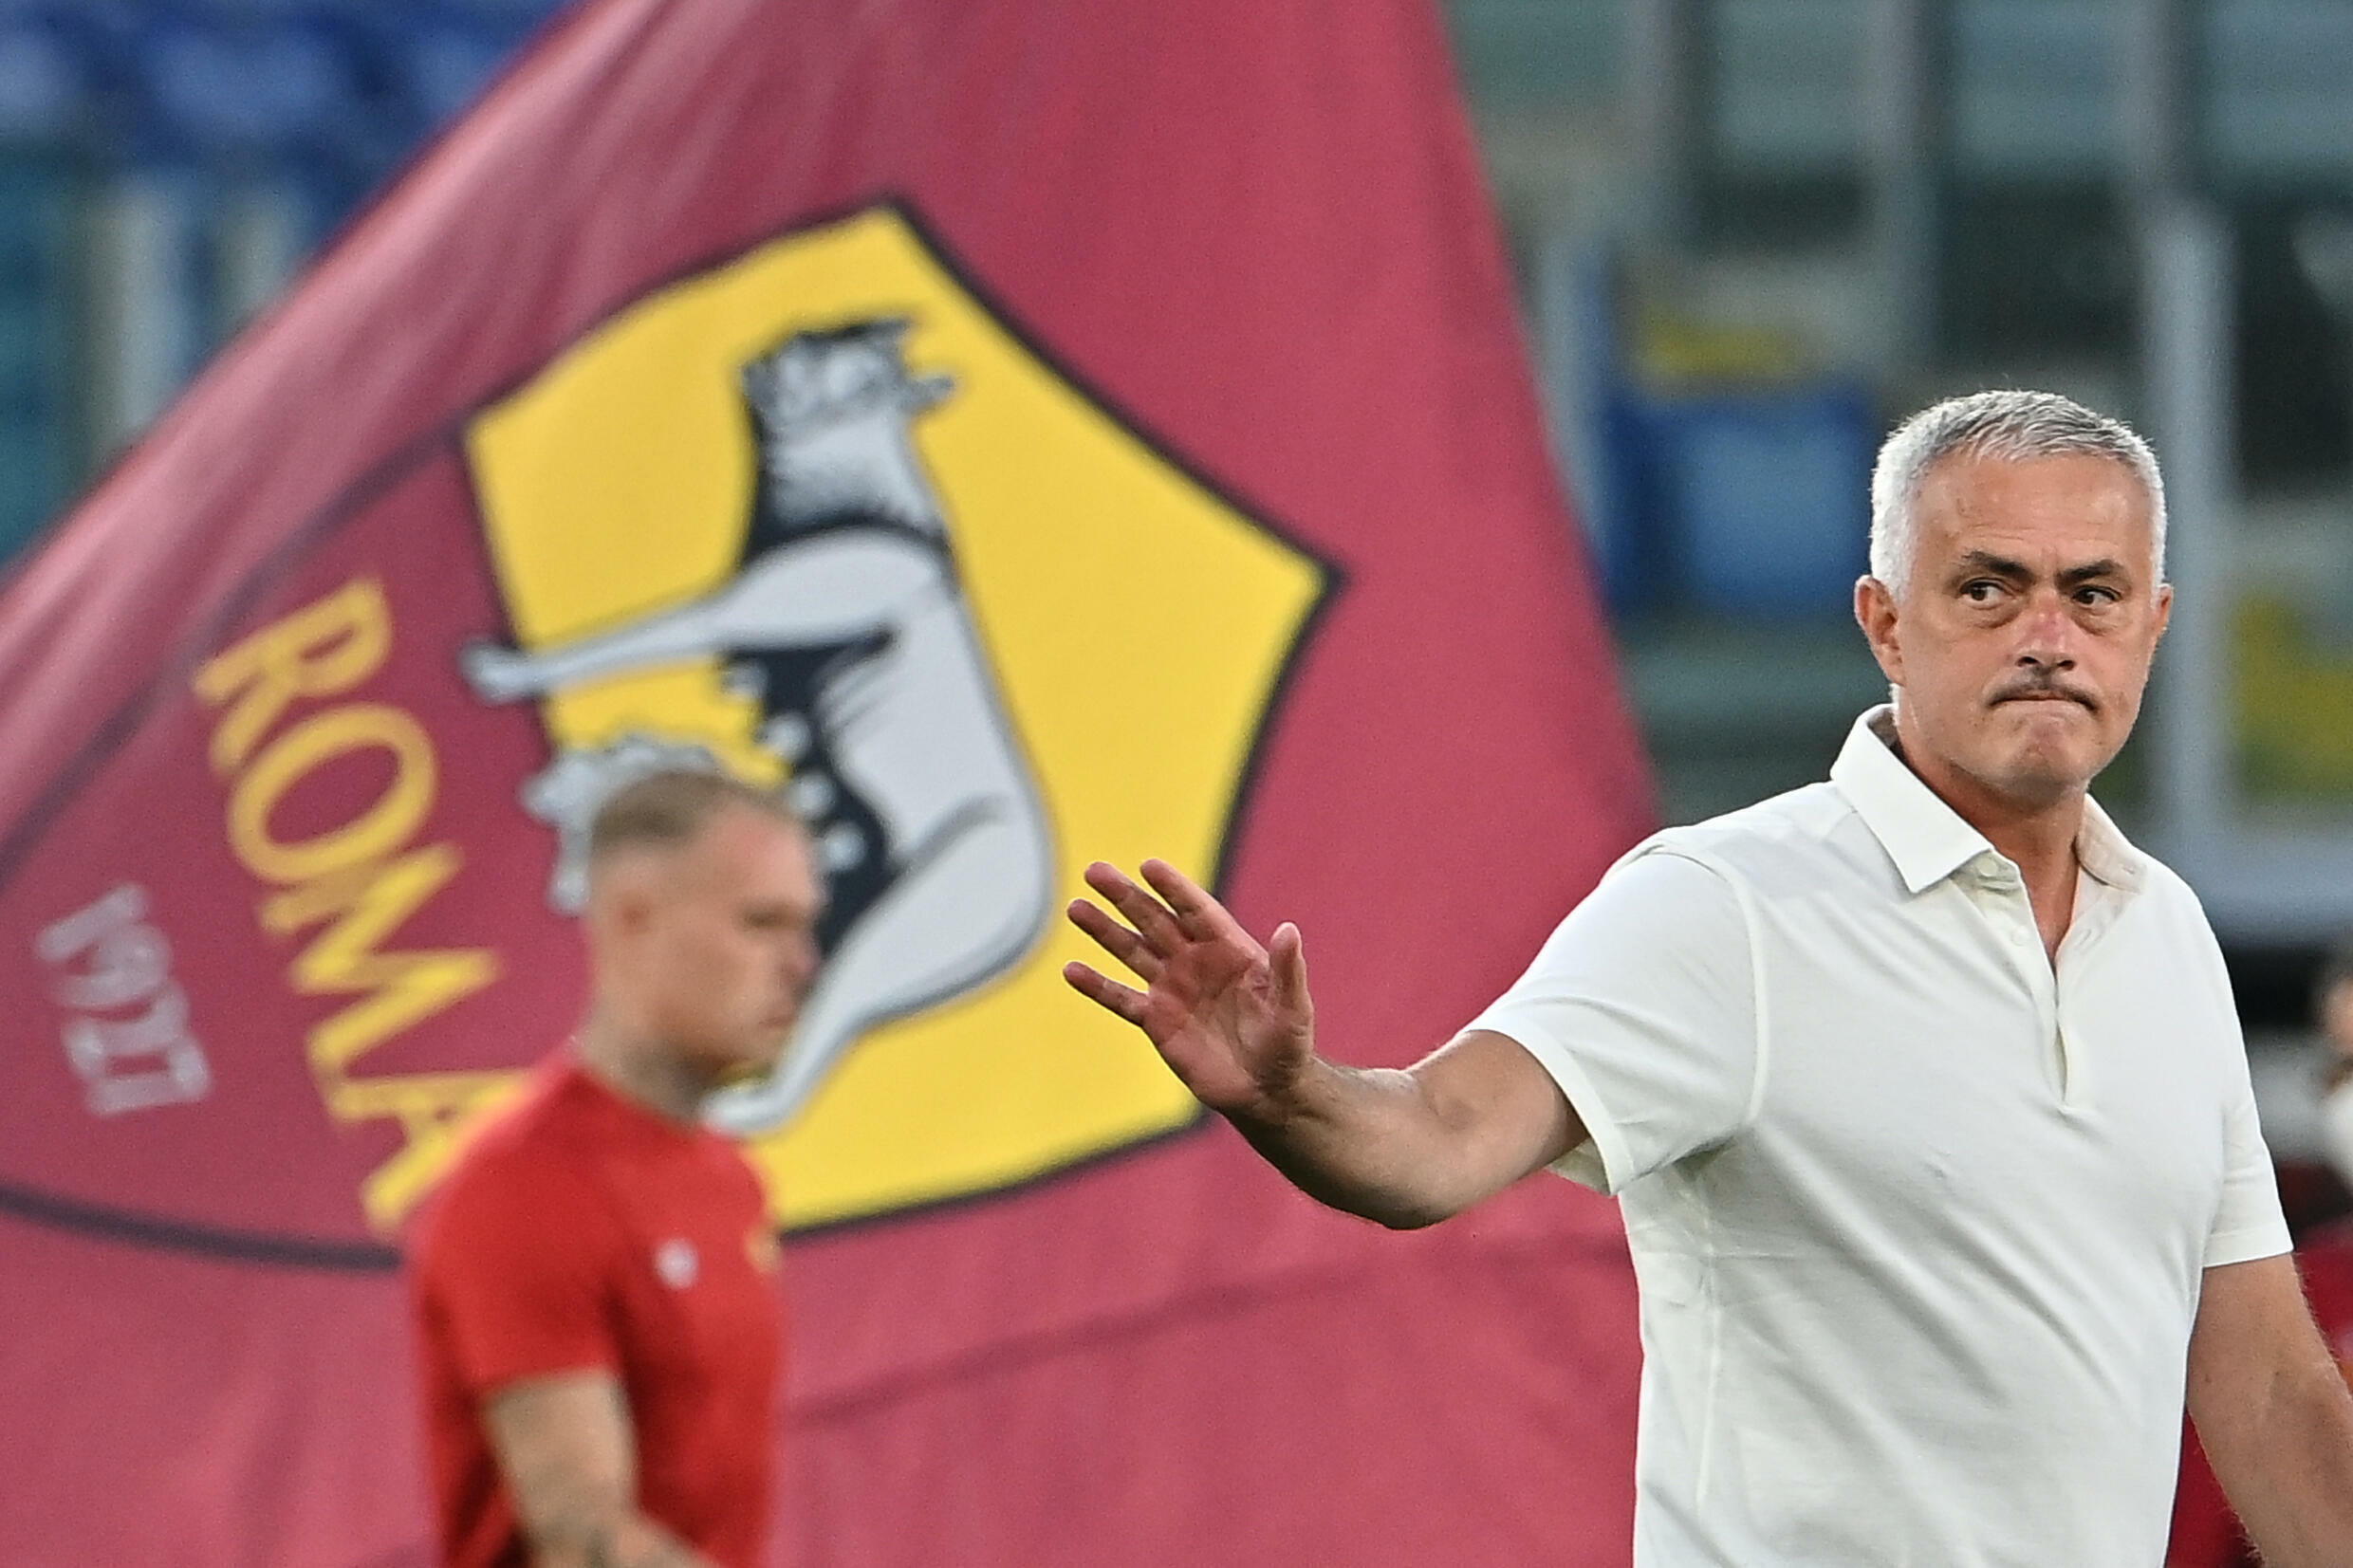 After 995 matches, Mourinho 'calm' ahead of competitive Roma bow - France 24